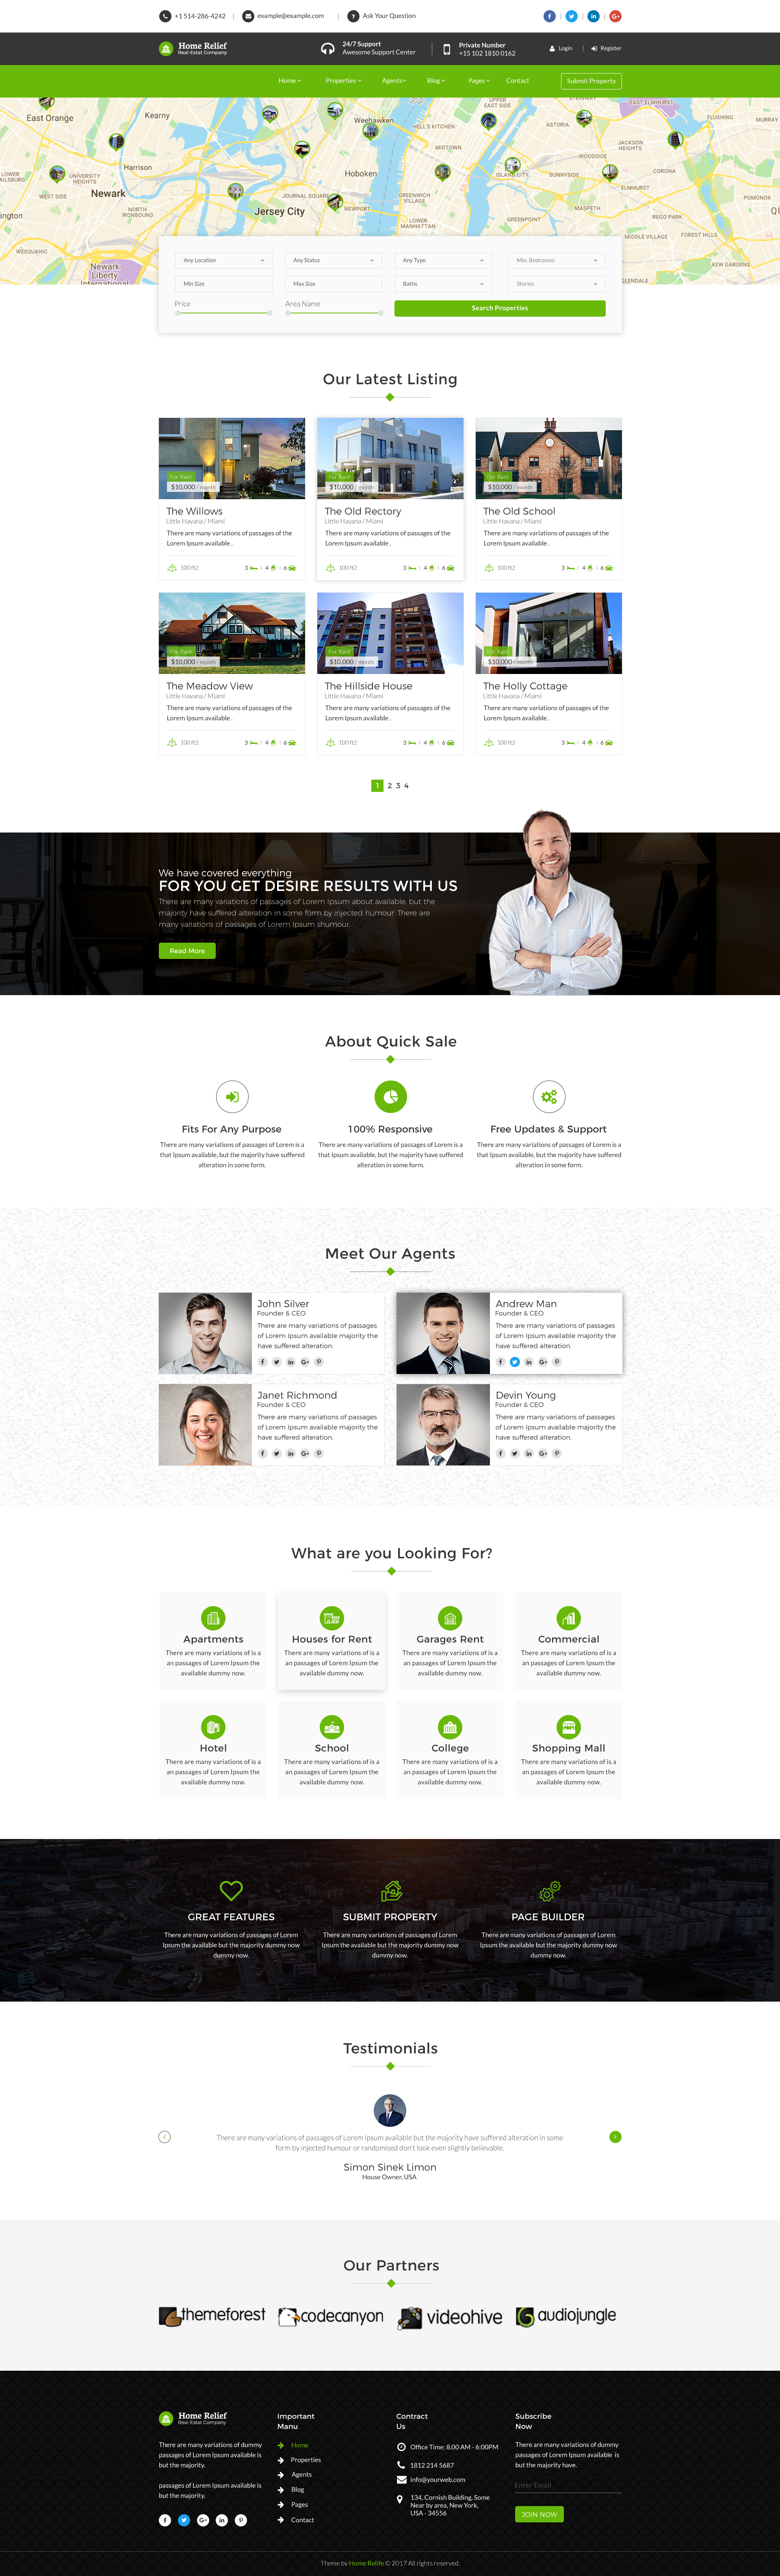 Wonderful Theme Preview Set/00 Preview Image Theme Preview Set/01 Home Relief Home  Page 1 ...